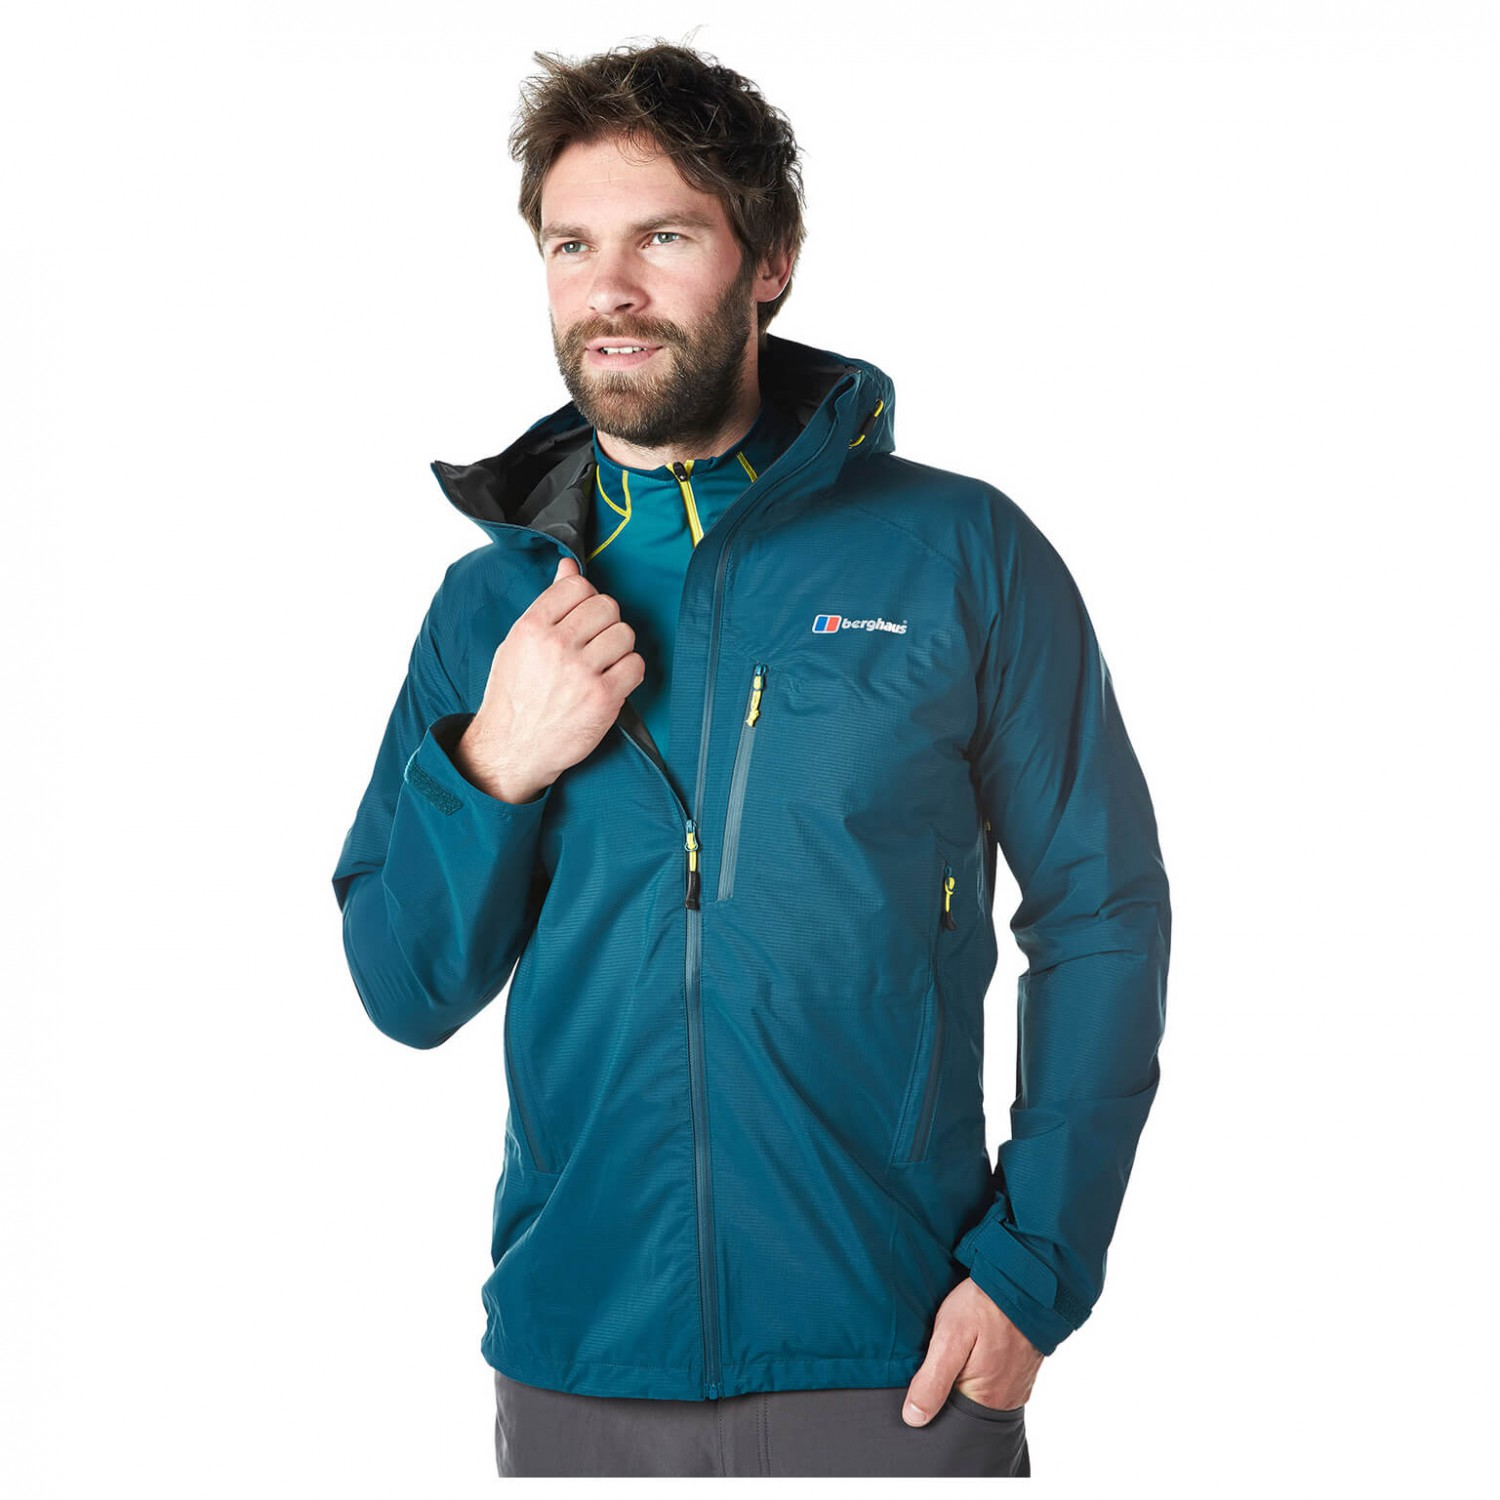 competitive price 238e8 fc07c Berghaus - Light Speed Hydroshell Jacket - Waterproof jacket